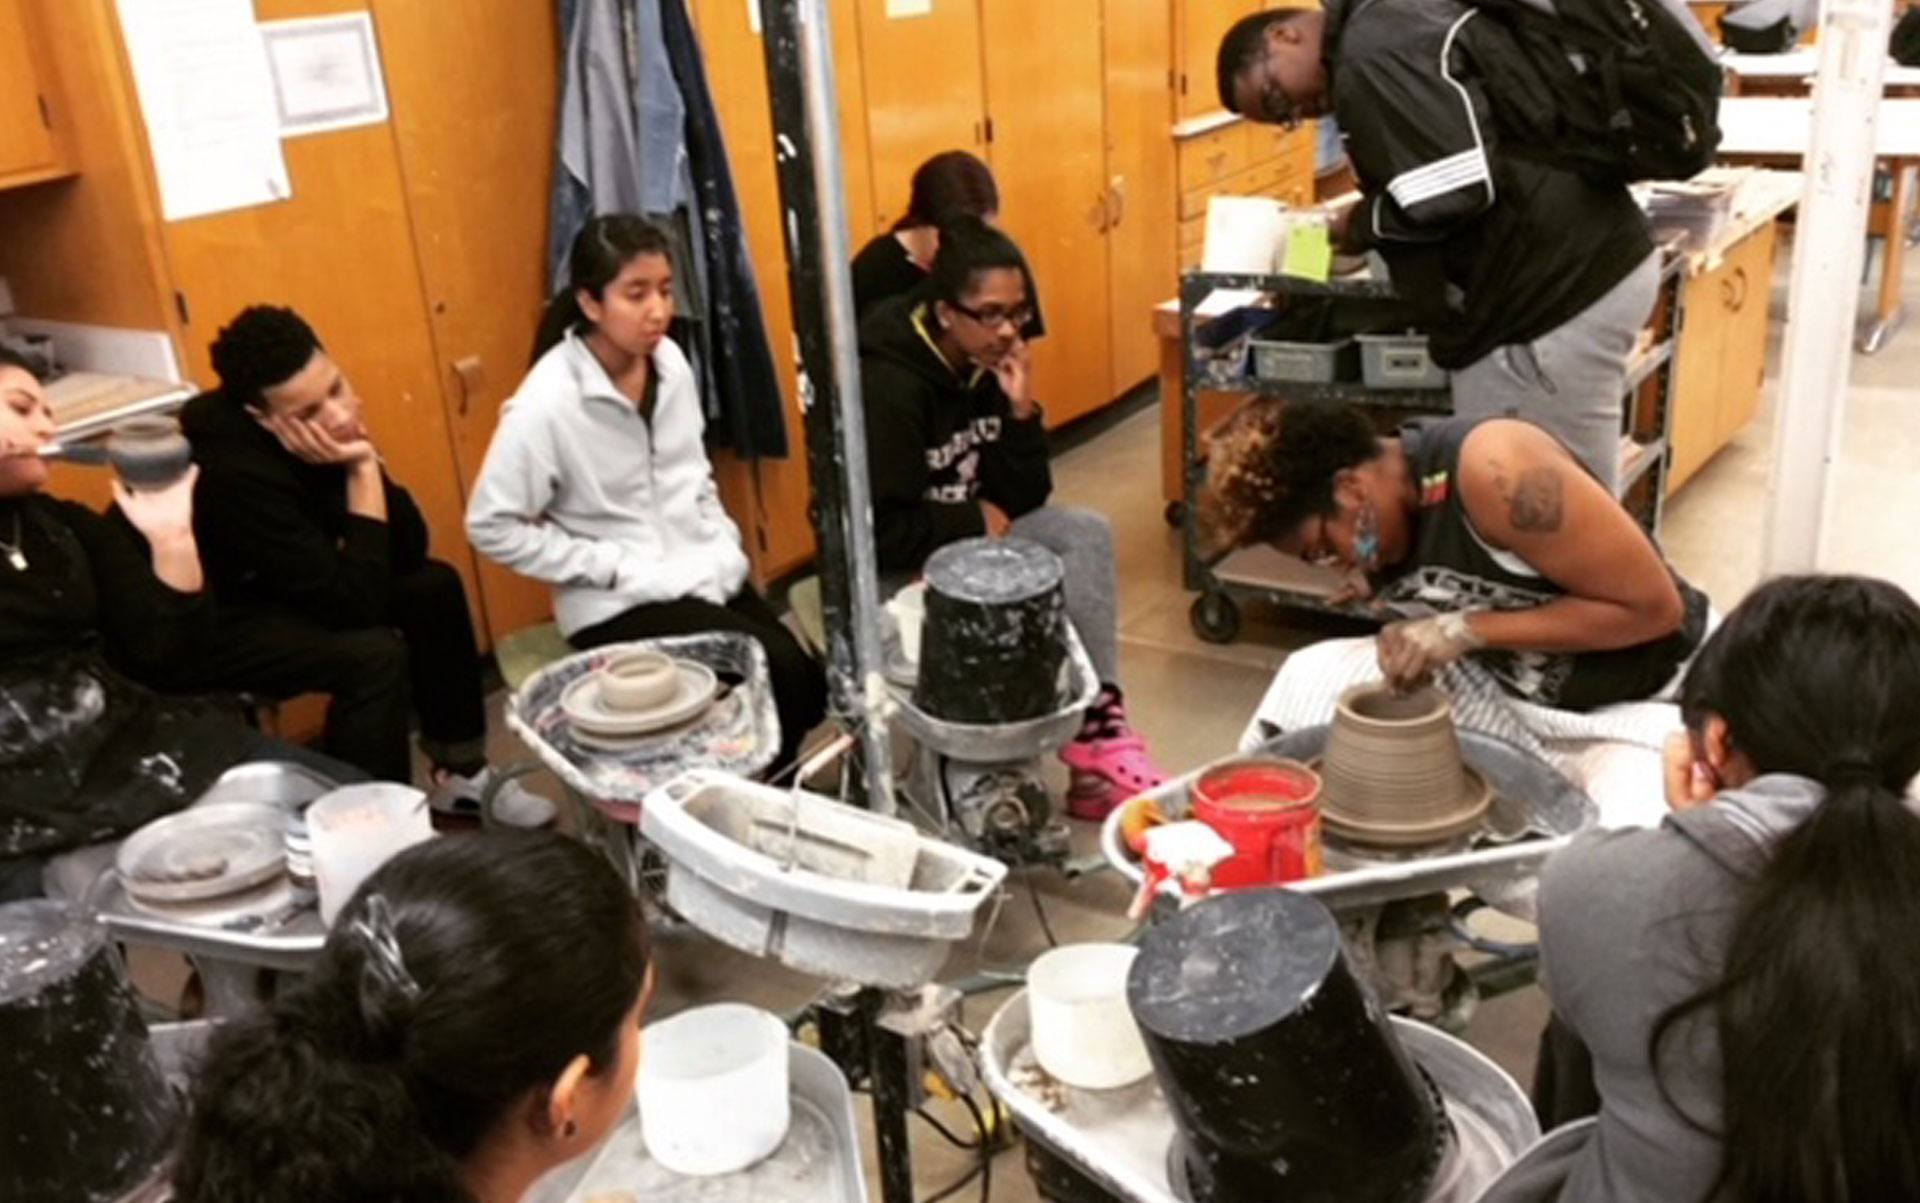 Gabrielle Grier teaching ceramics to a group of young students.